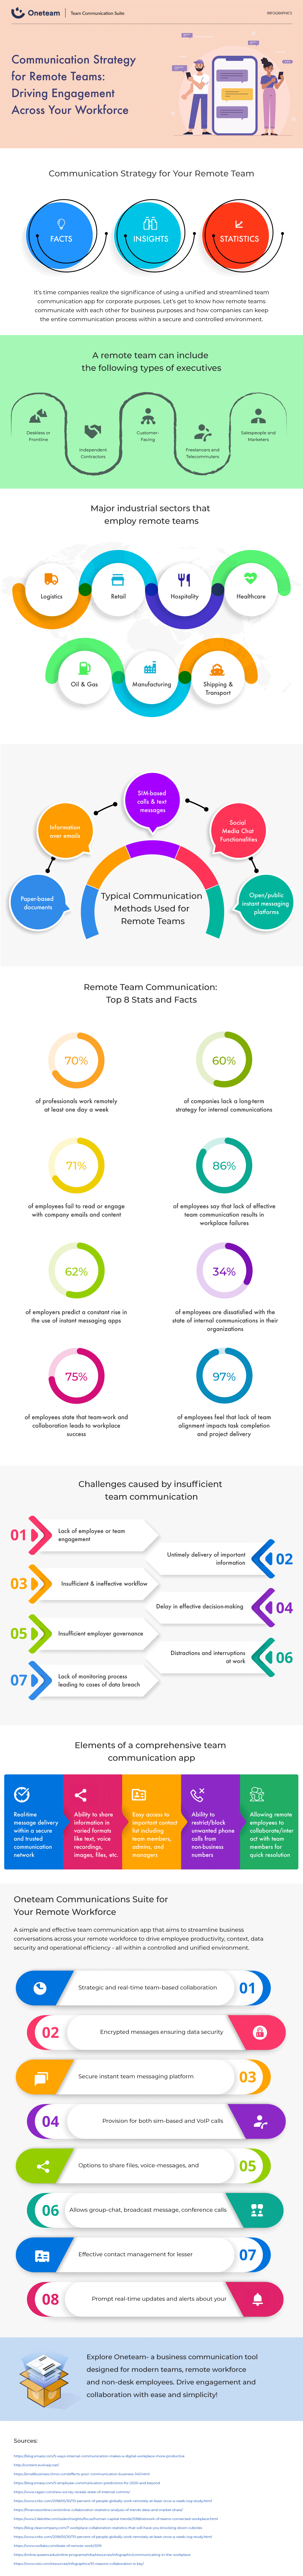 [Infographic] Why Companies Need to Rethink Their Communication Strategy for Remote Teams